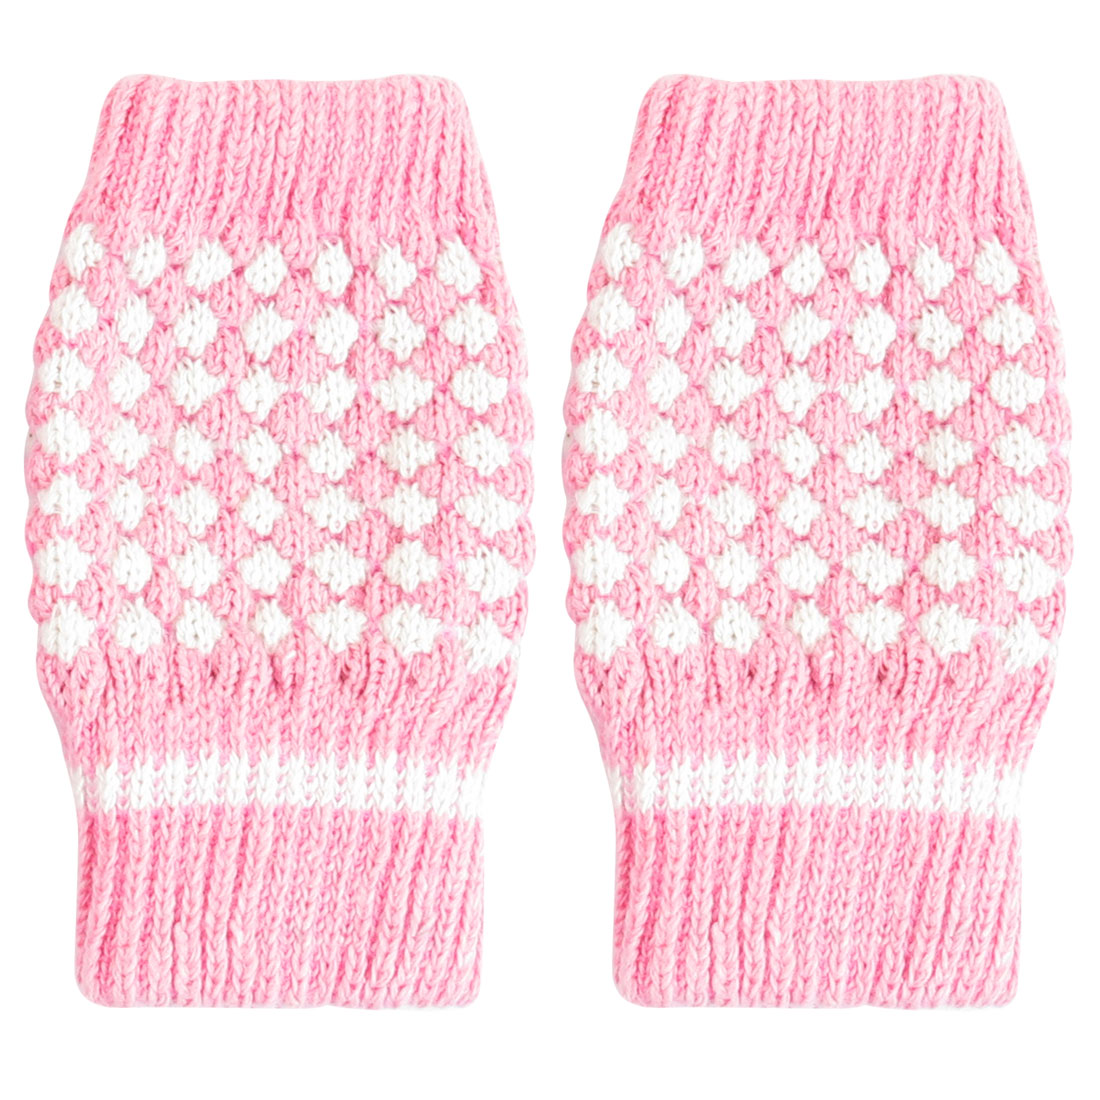 Ladies Pink White Winter Warmer Knitted Fingerless Gloves Mittens